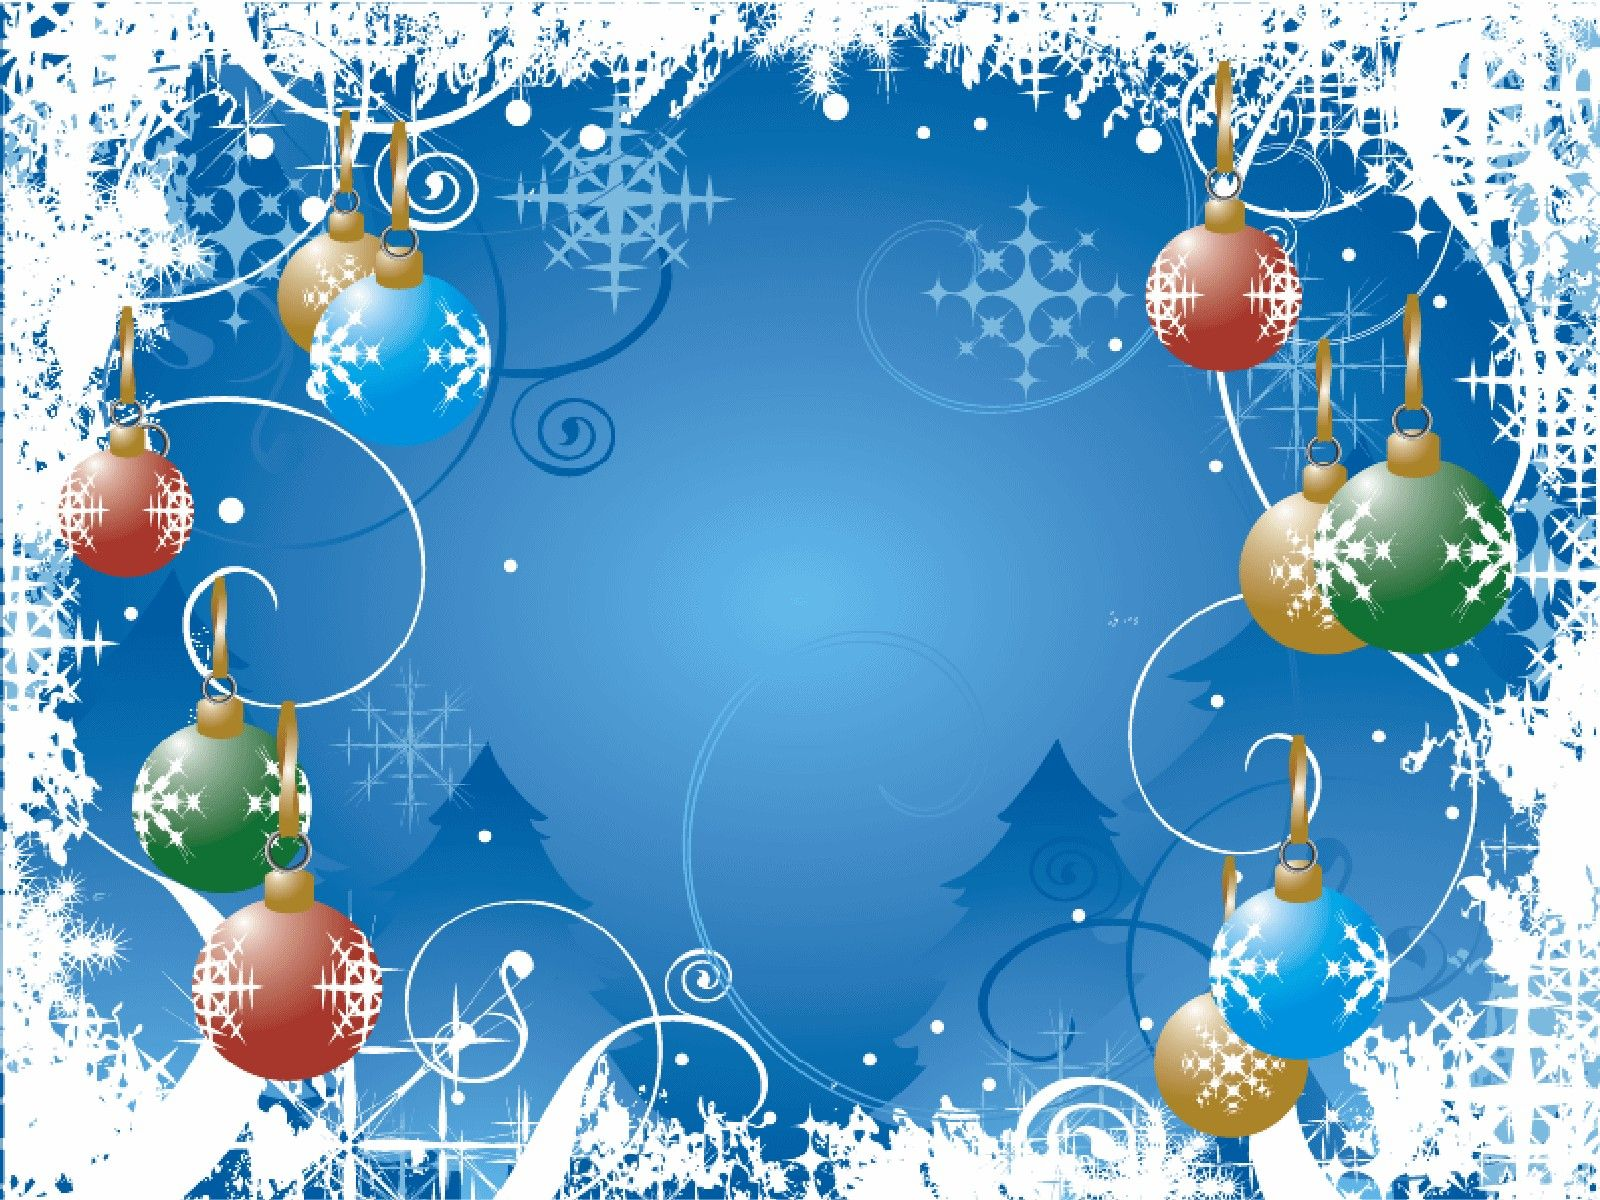 Free Christmas Wallpaper Backgrounds.Free Christmas Wallpaper Backgrounds Christmas Christmas